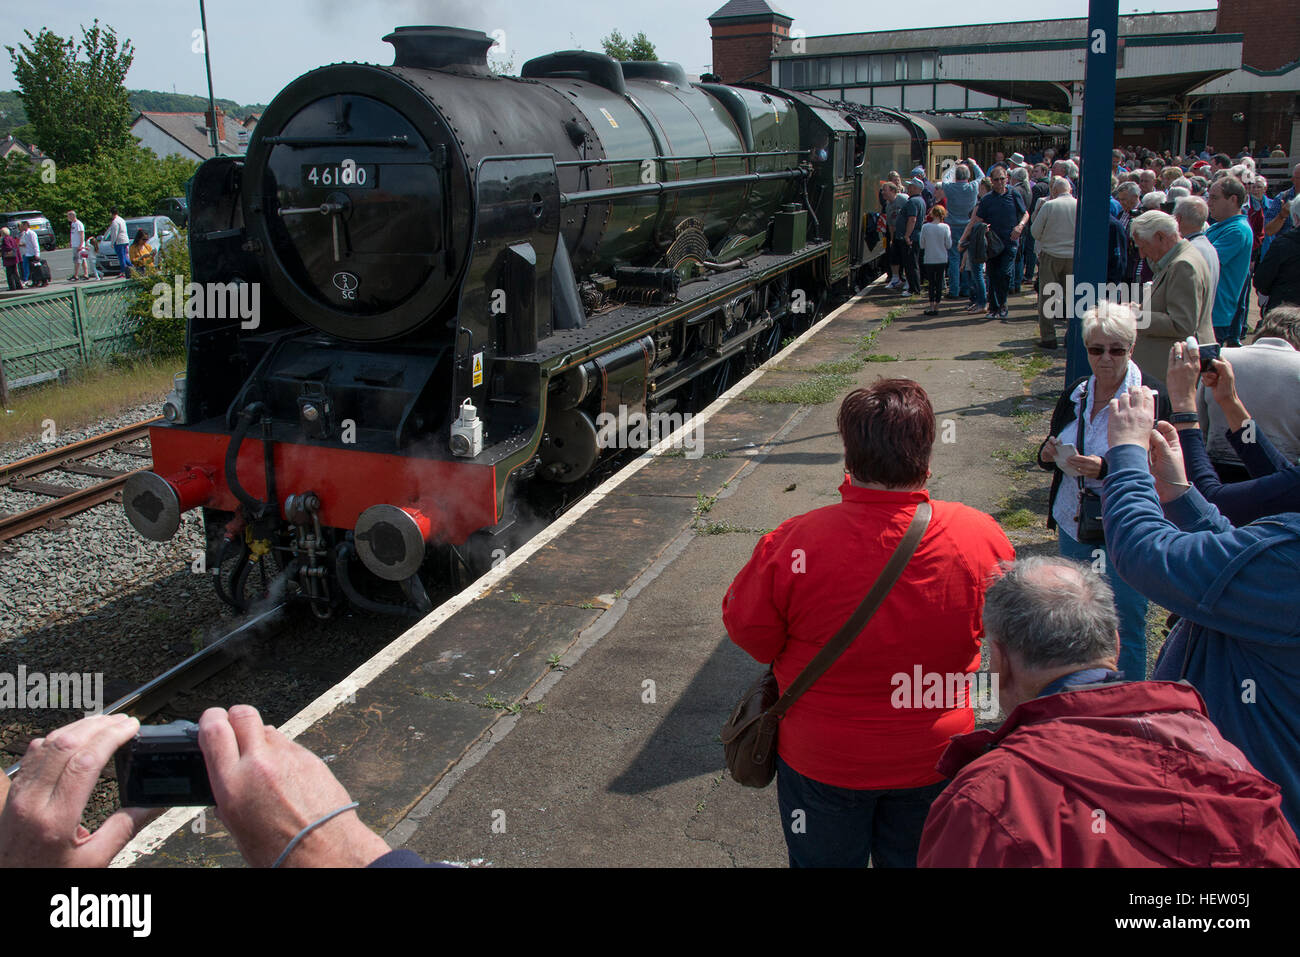 Royal Scot steam locomotive at station platform with crowd on onlookers - Stock Image